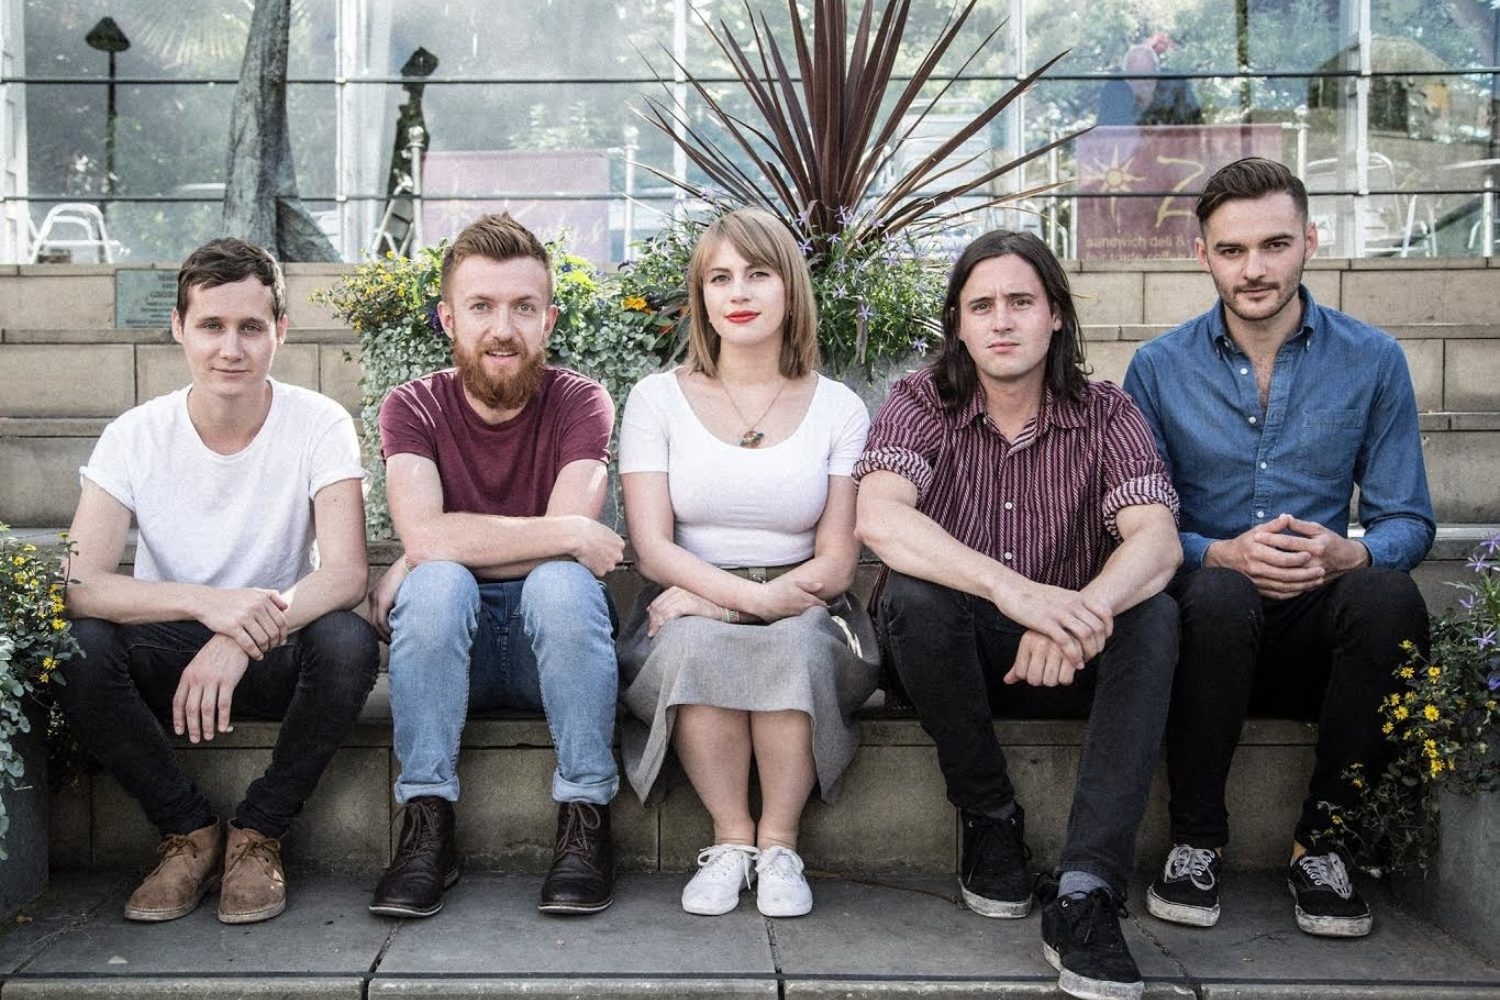 The Dillinger Escape Plan, Rolo Tomassi, 65daysofstatic to play ArcTanGent 2015